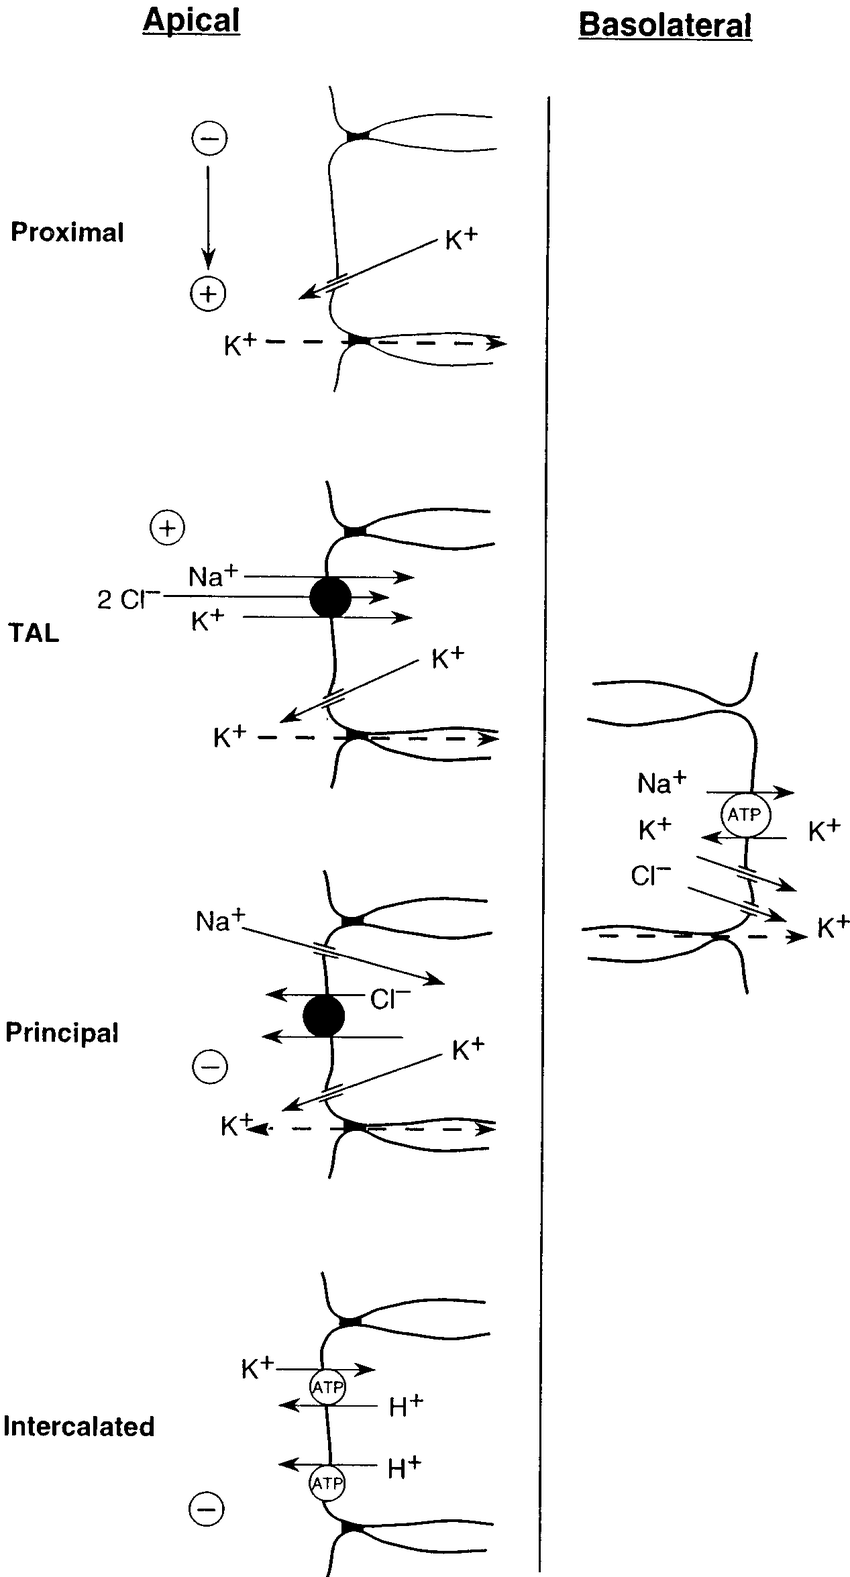 hight resolution of cell models of potassium transport along the nephron note similarity of transporters in the basolateral